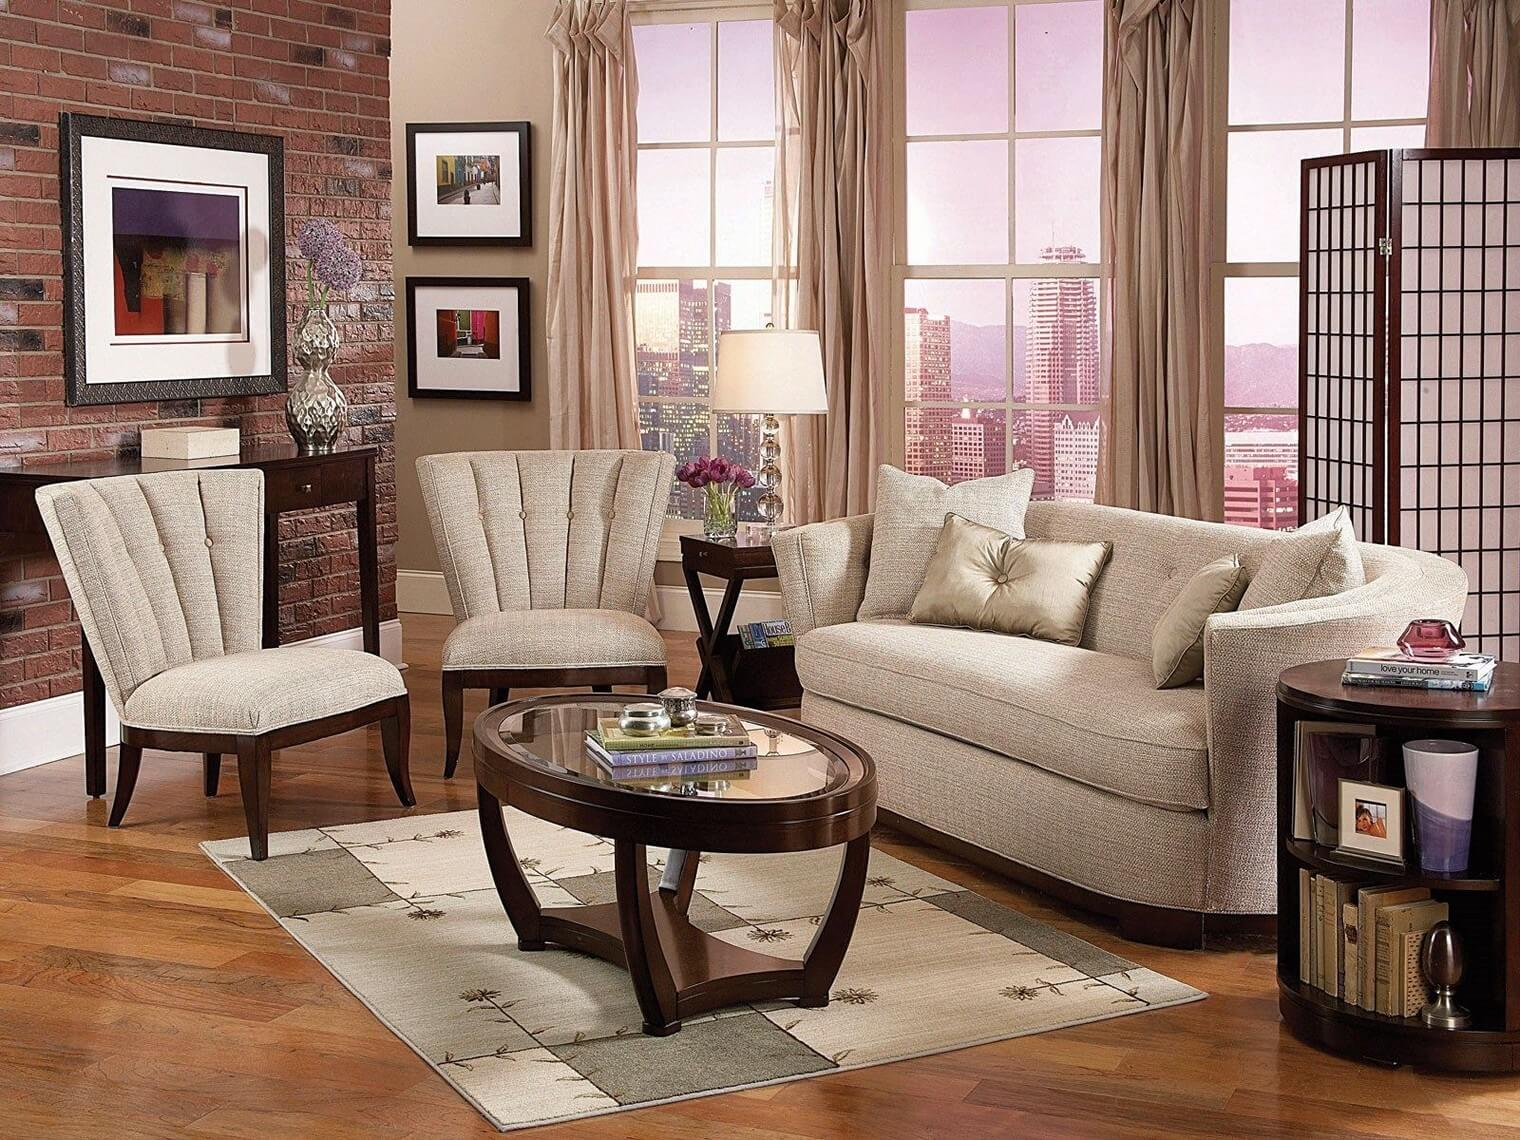 Comfortable living room chairs that fit great accompanied by a two set sofa, one oval dark wood small tea table with glass top, red brick wall and large light drapes.